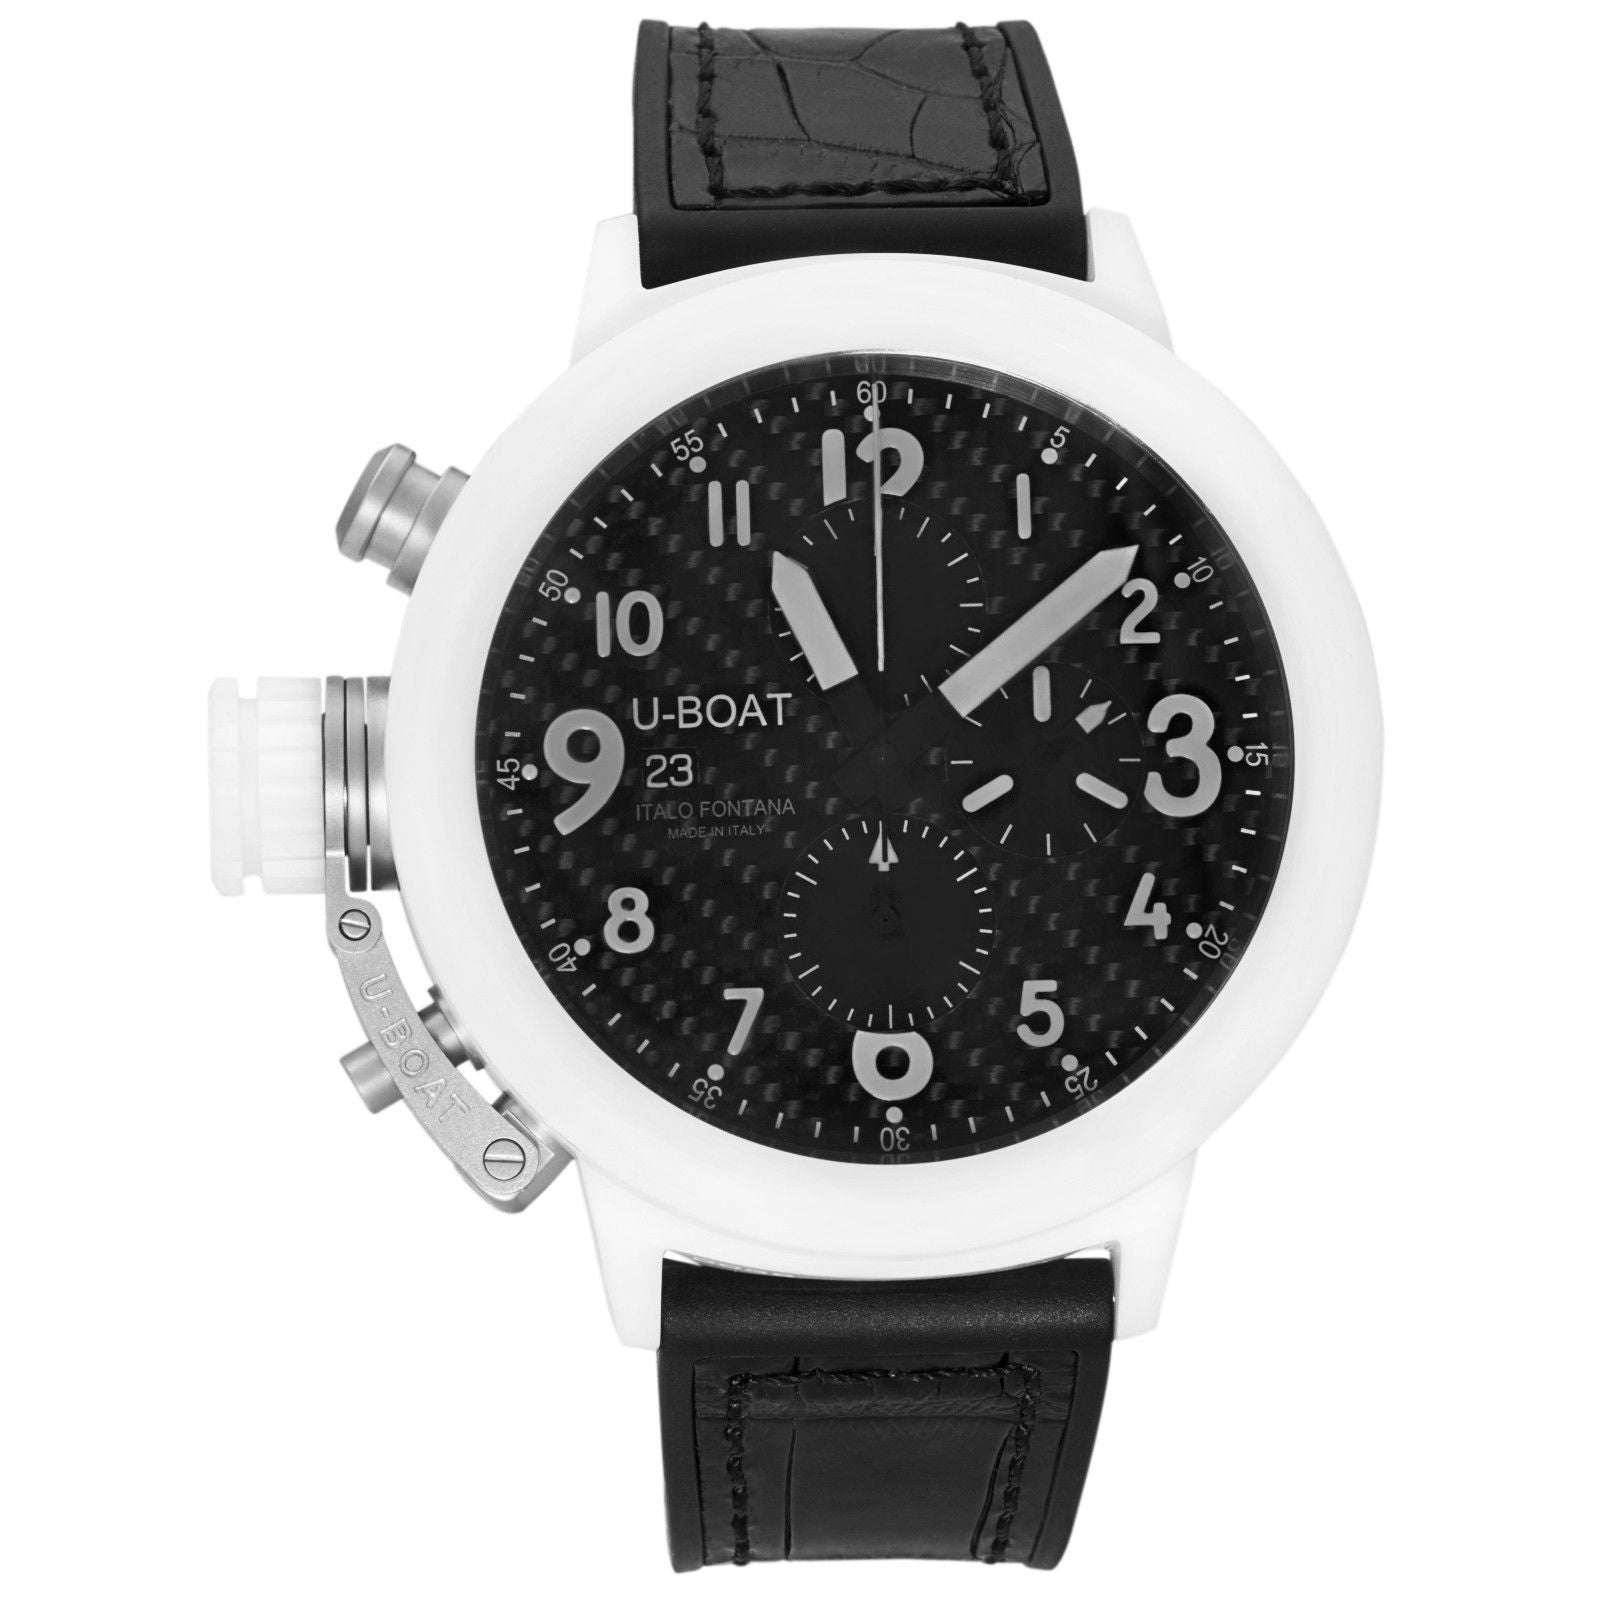 Flightdeck Chronograph Full Ceramic 7095 Automatic Men's Watch-Luxury Watches | Mens And Ladies Luxury Watches | Upscale Time